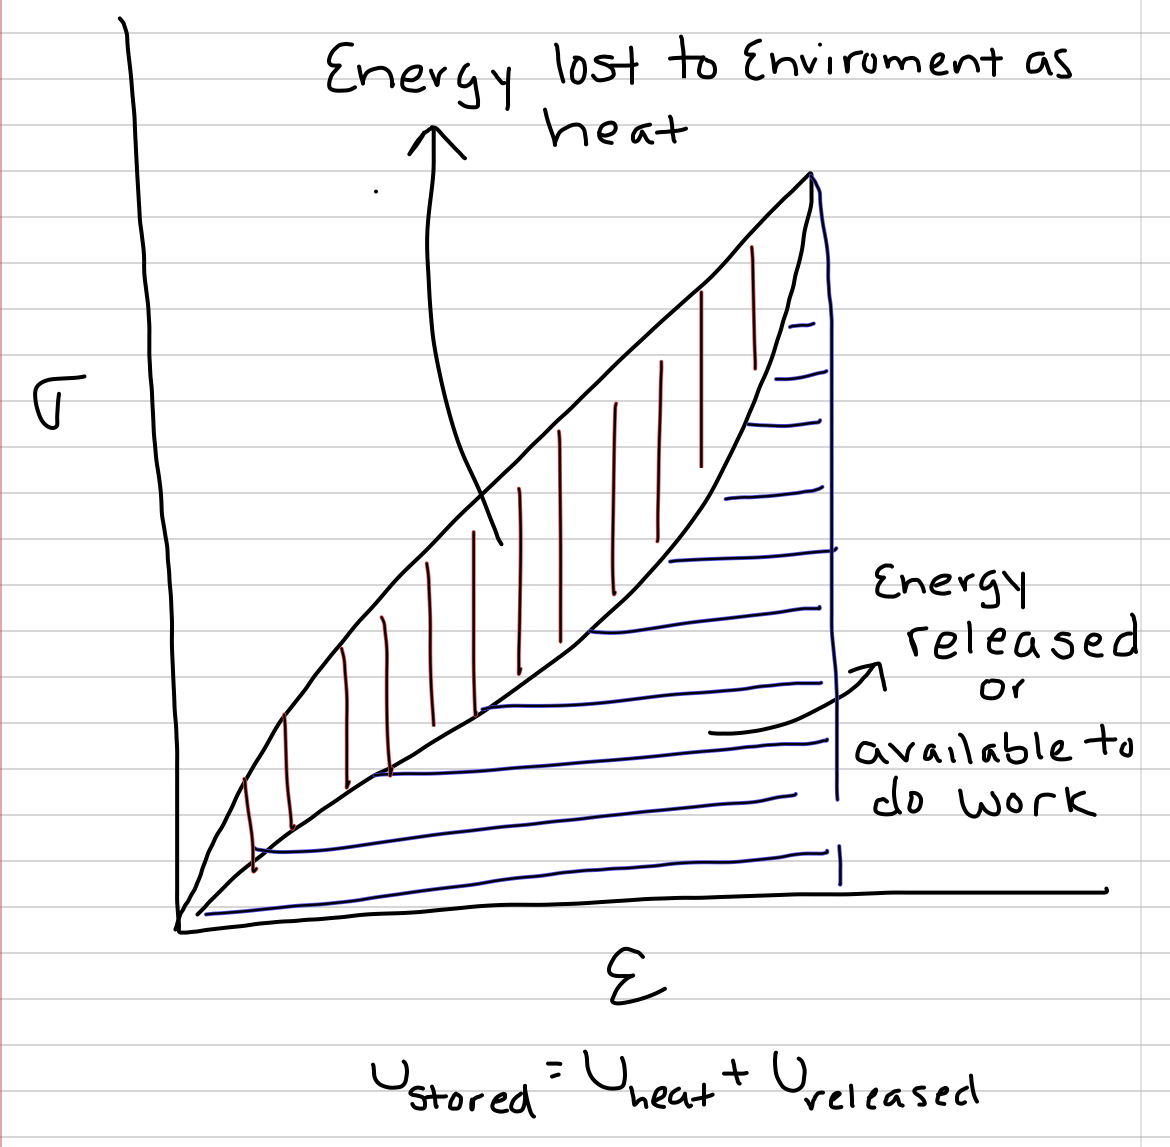 The total area under the loading curve is the stored elastic strain energy density. The area under the unloading curve is the fraction of stored elastic strain energy density that is returned, or available to do work. The area between the two curves is the fraction of stored elastic strain energy density that is lost to the environment as heat